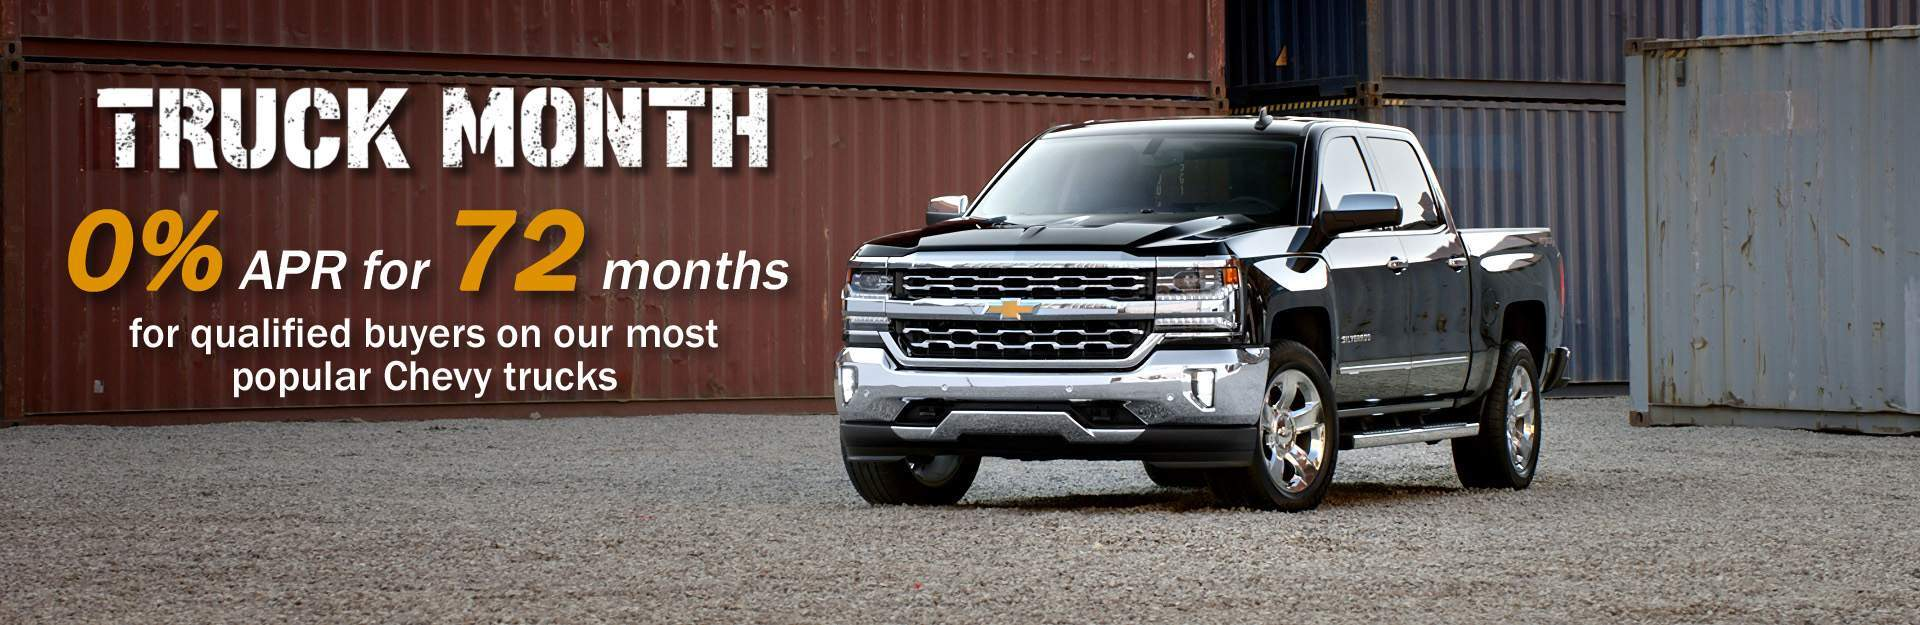 October 2017 Truck Month